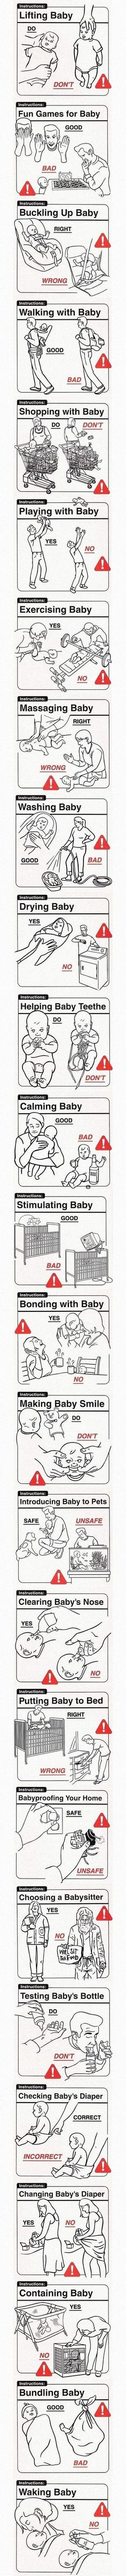 These Baby Do's And Don'ts Are Really Quite Informative (If You're An Idiot)